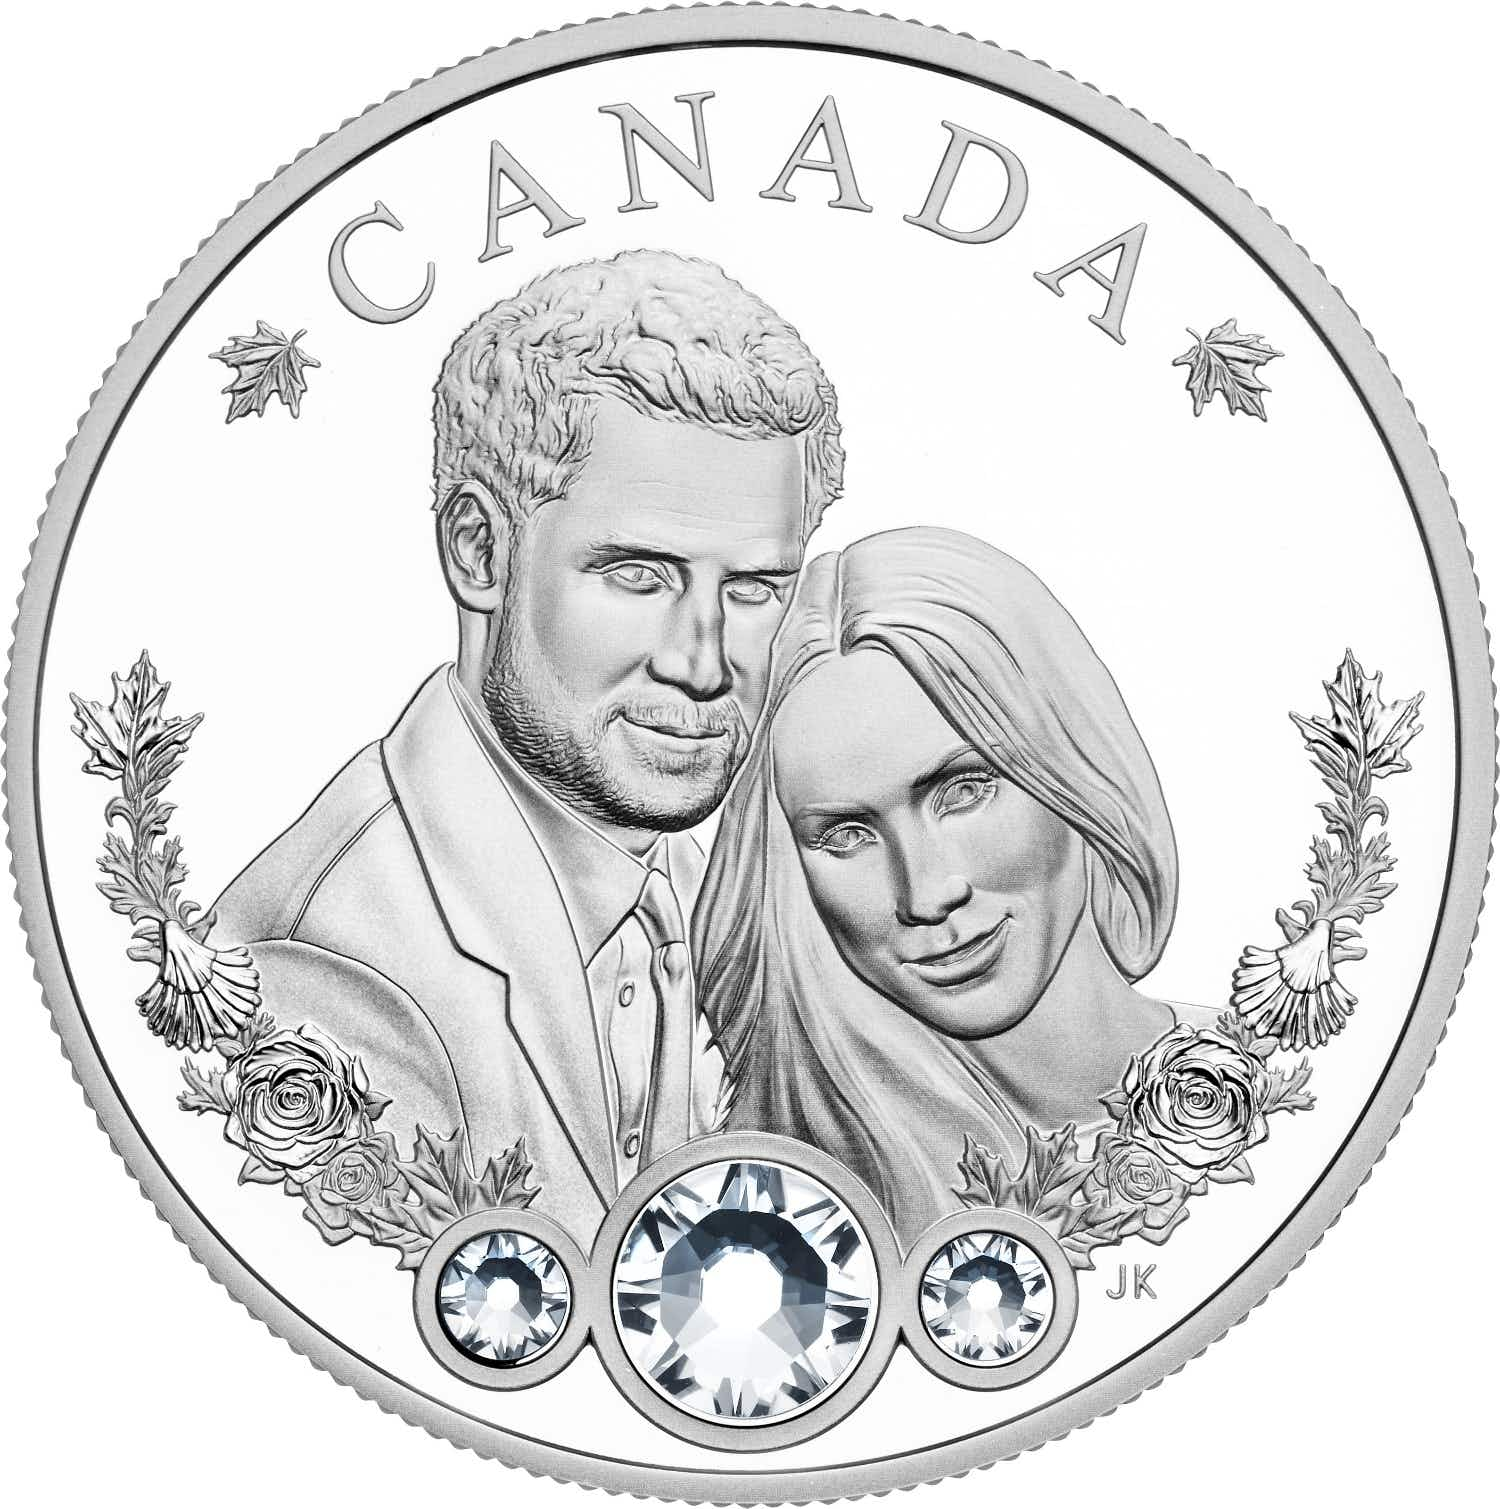 Visitors to Canada can purchase a silver coin in honour of Meghan Markle's marriage to Prince Harry